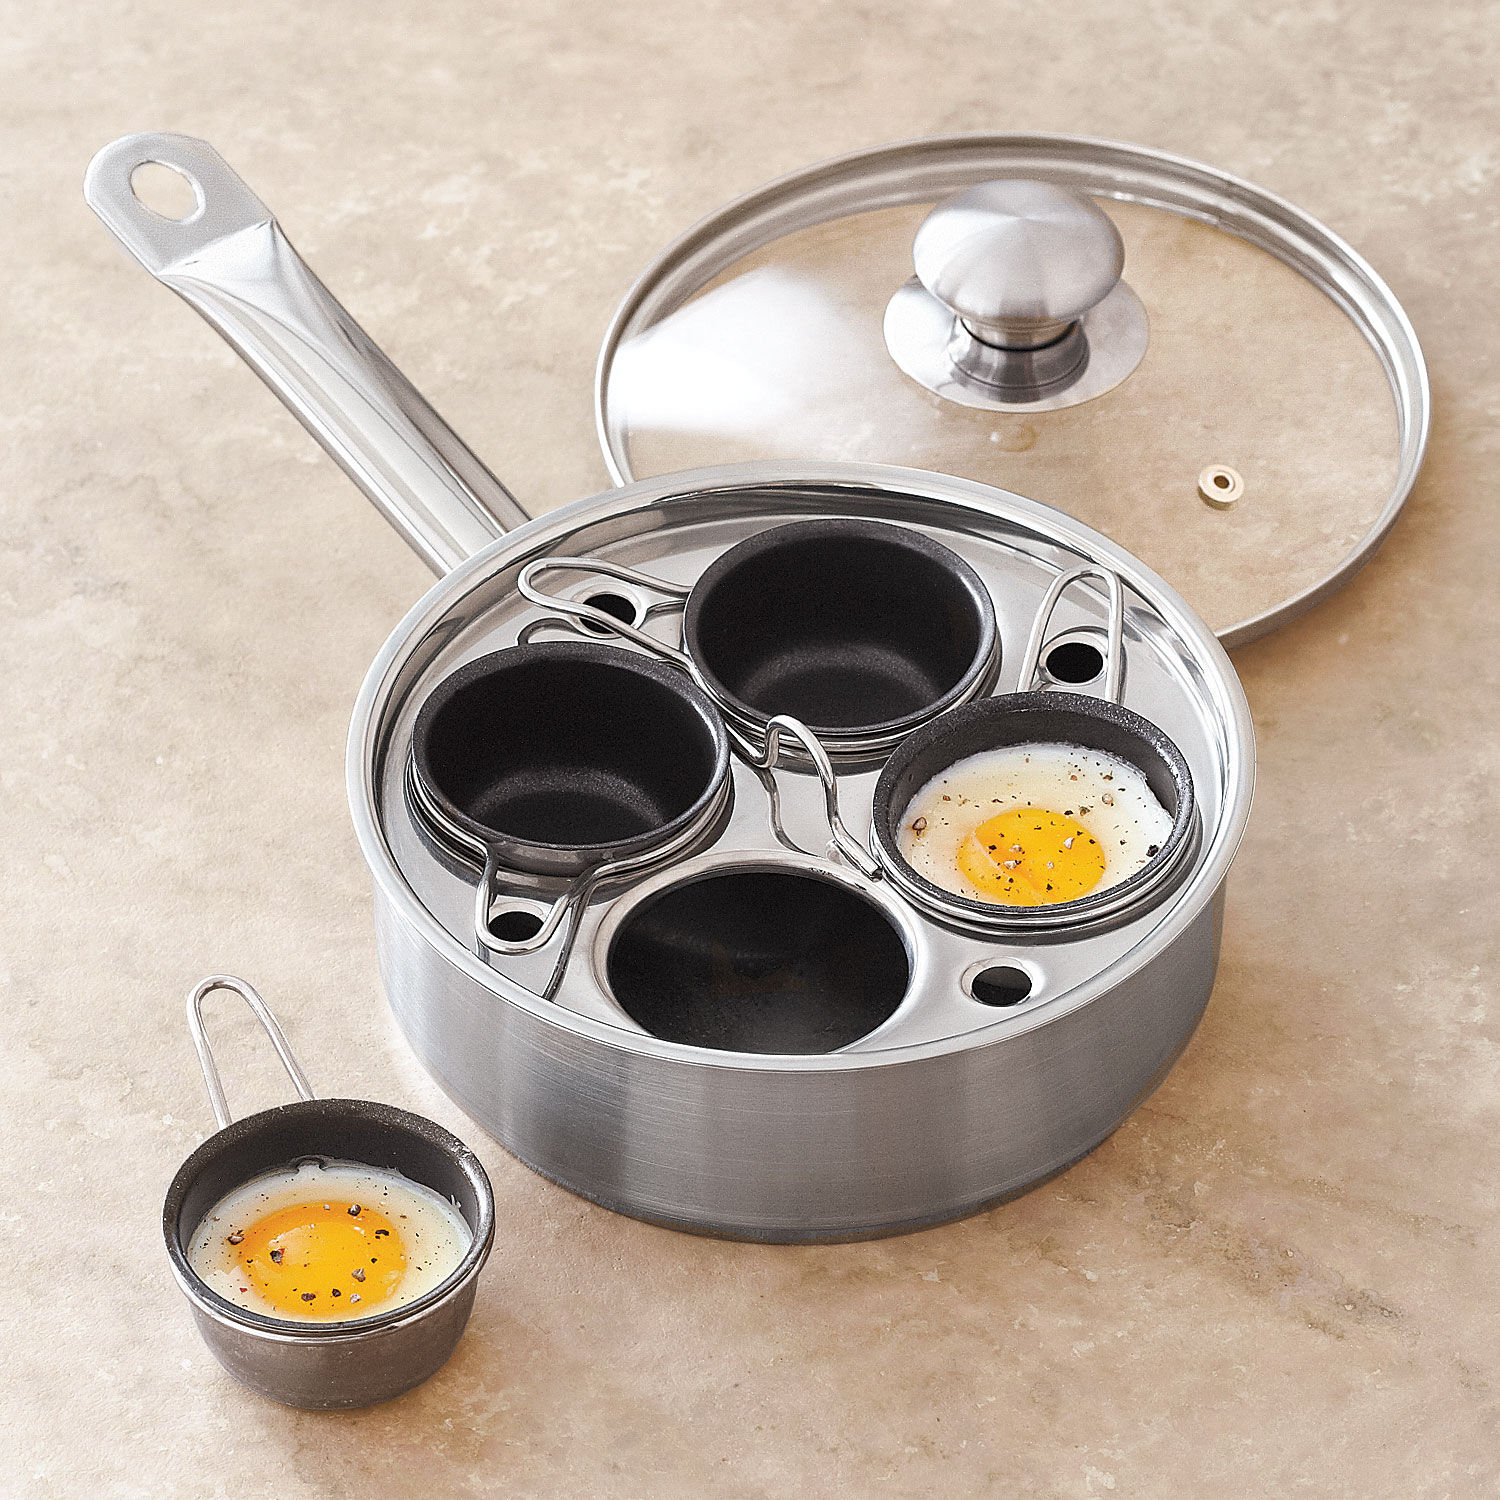 4 Hole Cup Non Stick Egg Poacher//Steamer Cooking Pan 4 Replacement Cups UK Made